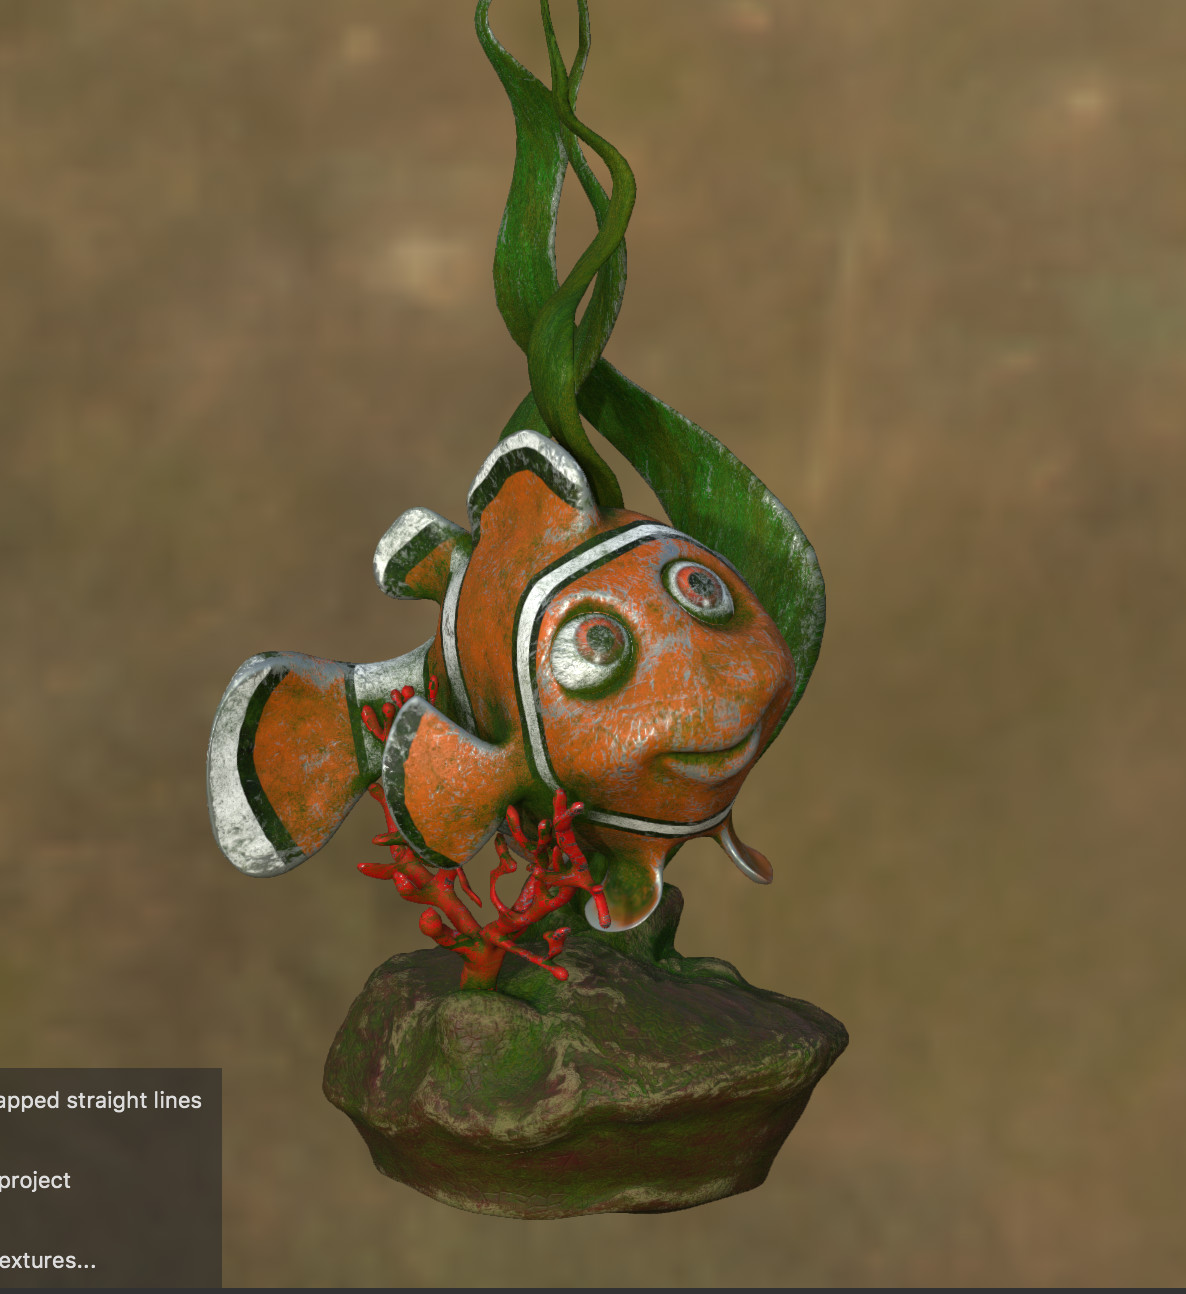 experimenting with mossy nemo in substance painter